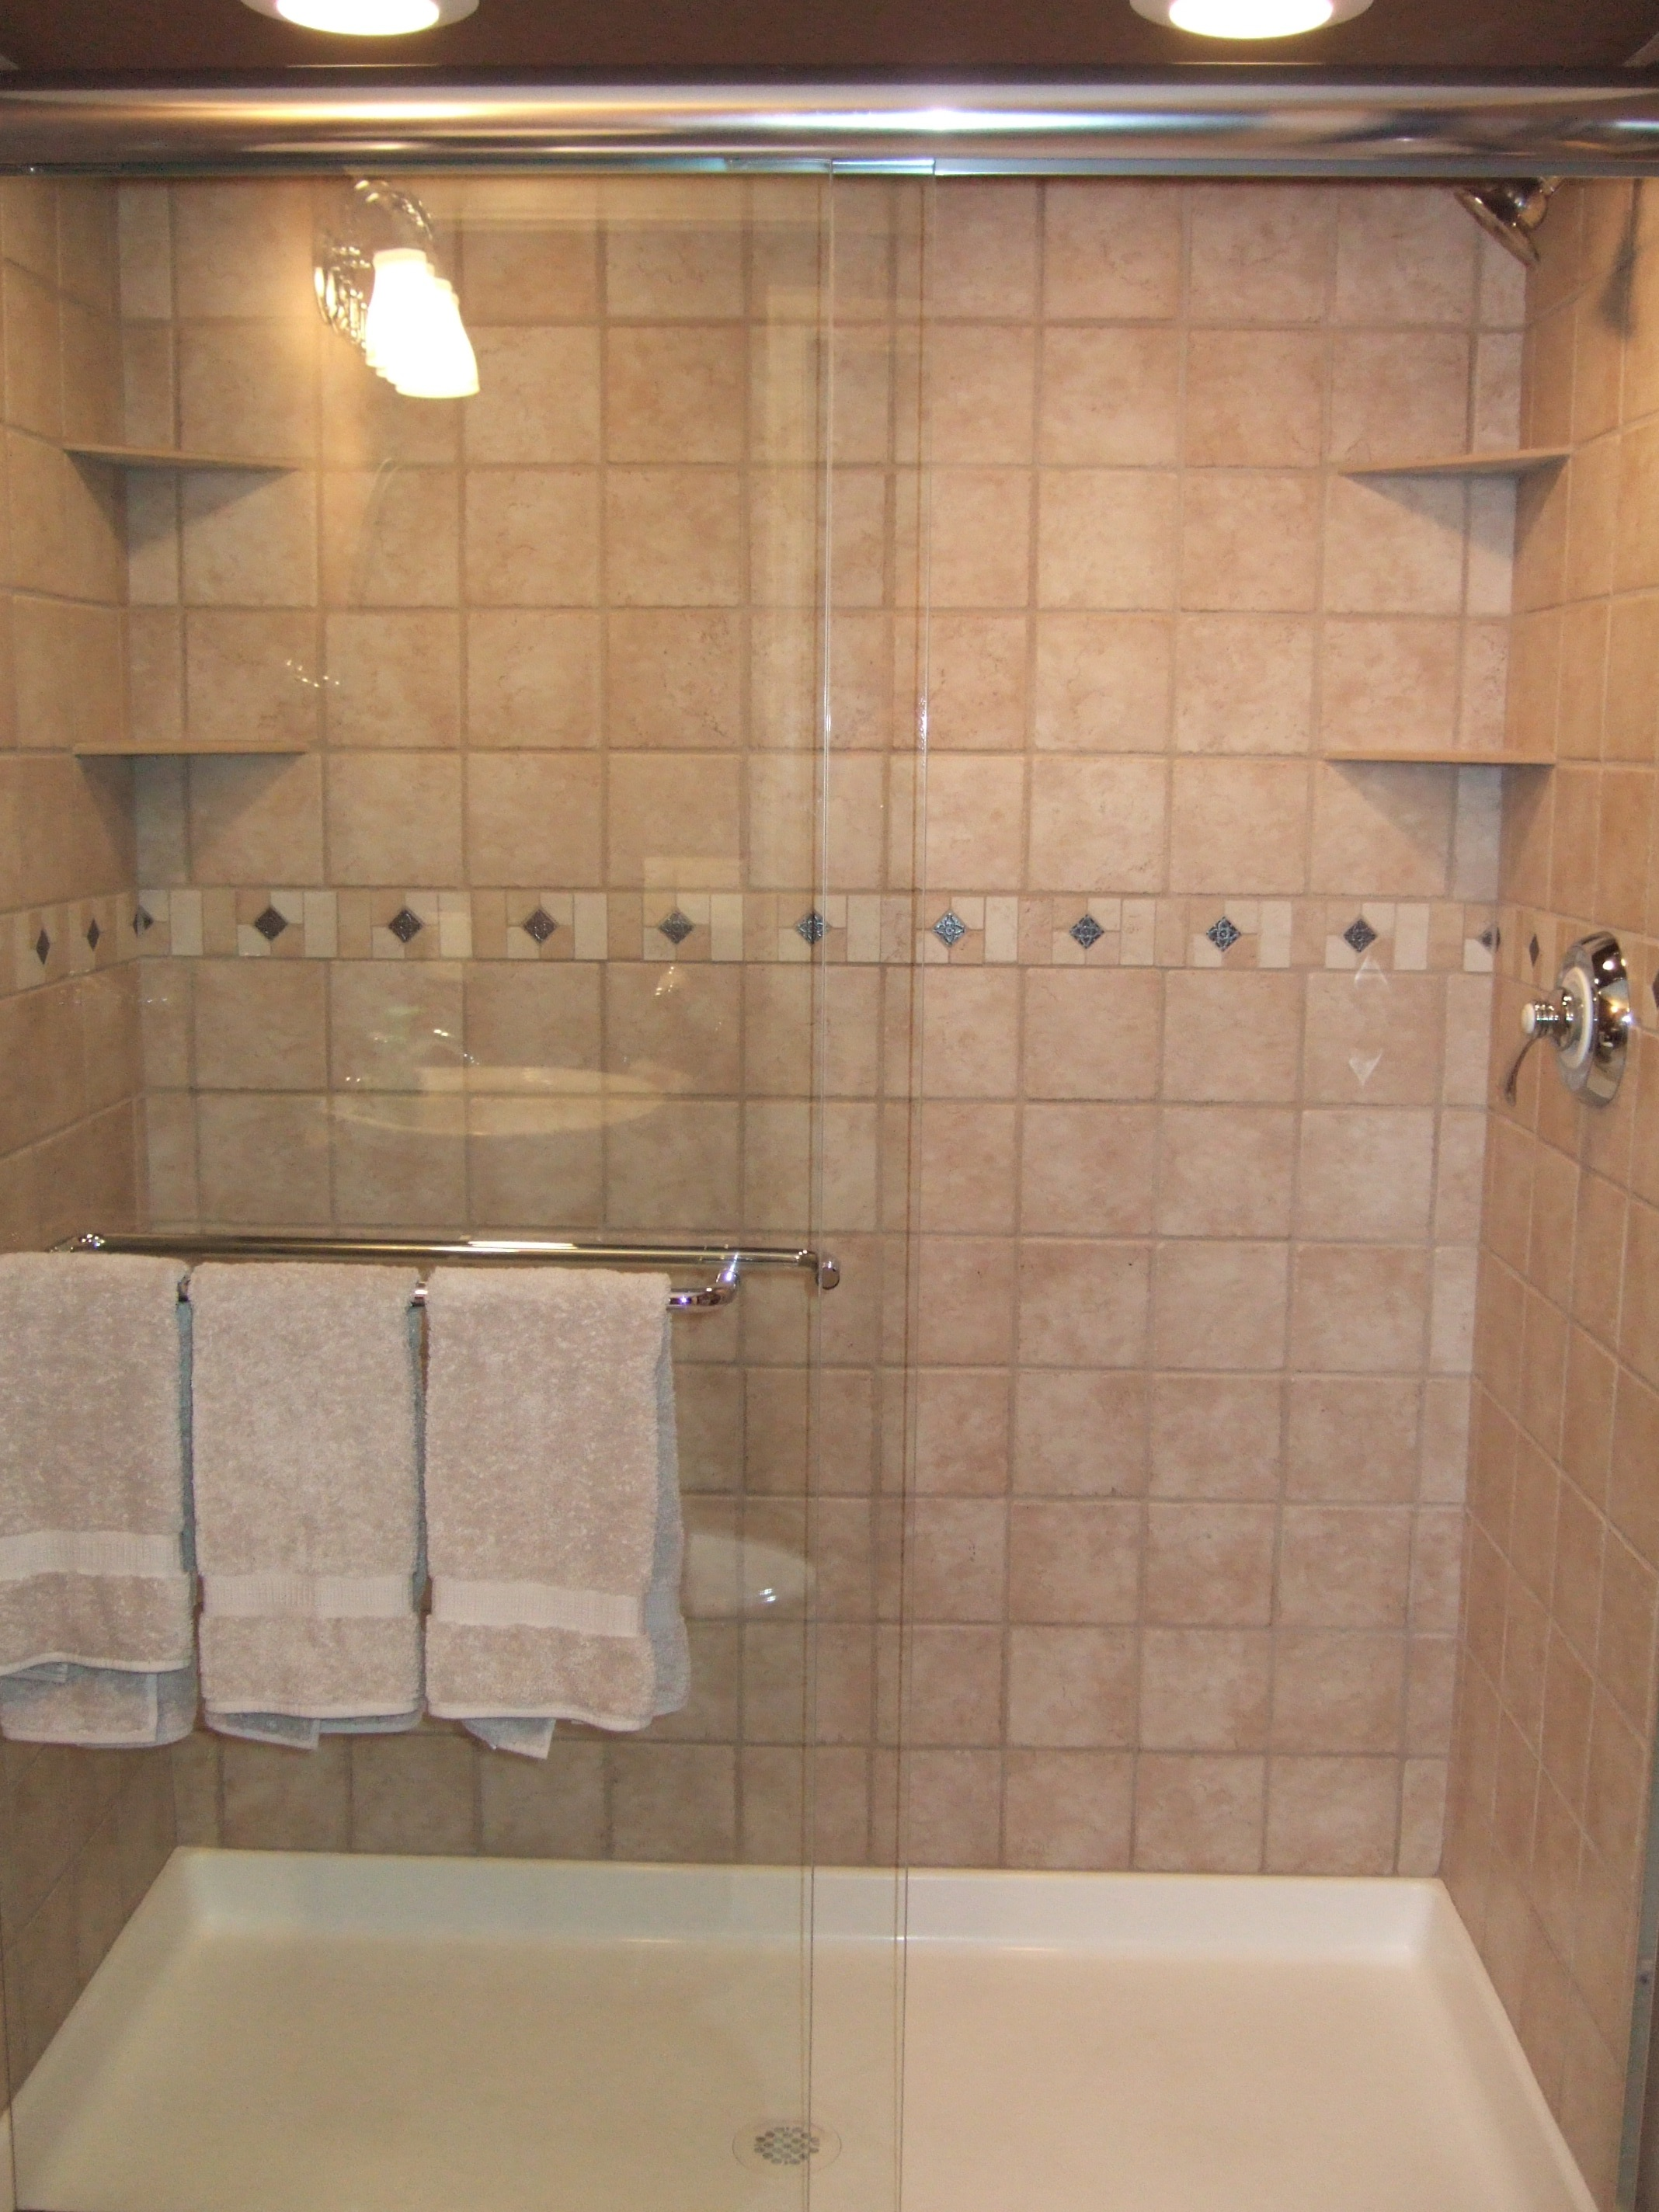 Tiling A Concrete Block Shower Stall Bathroom